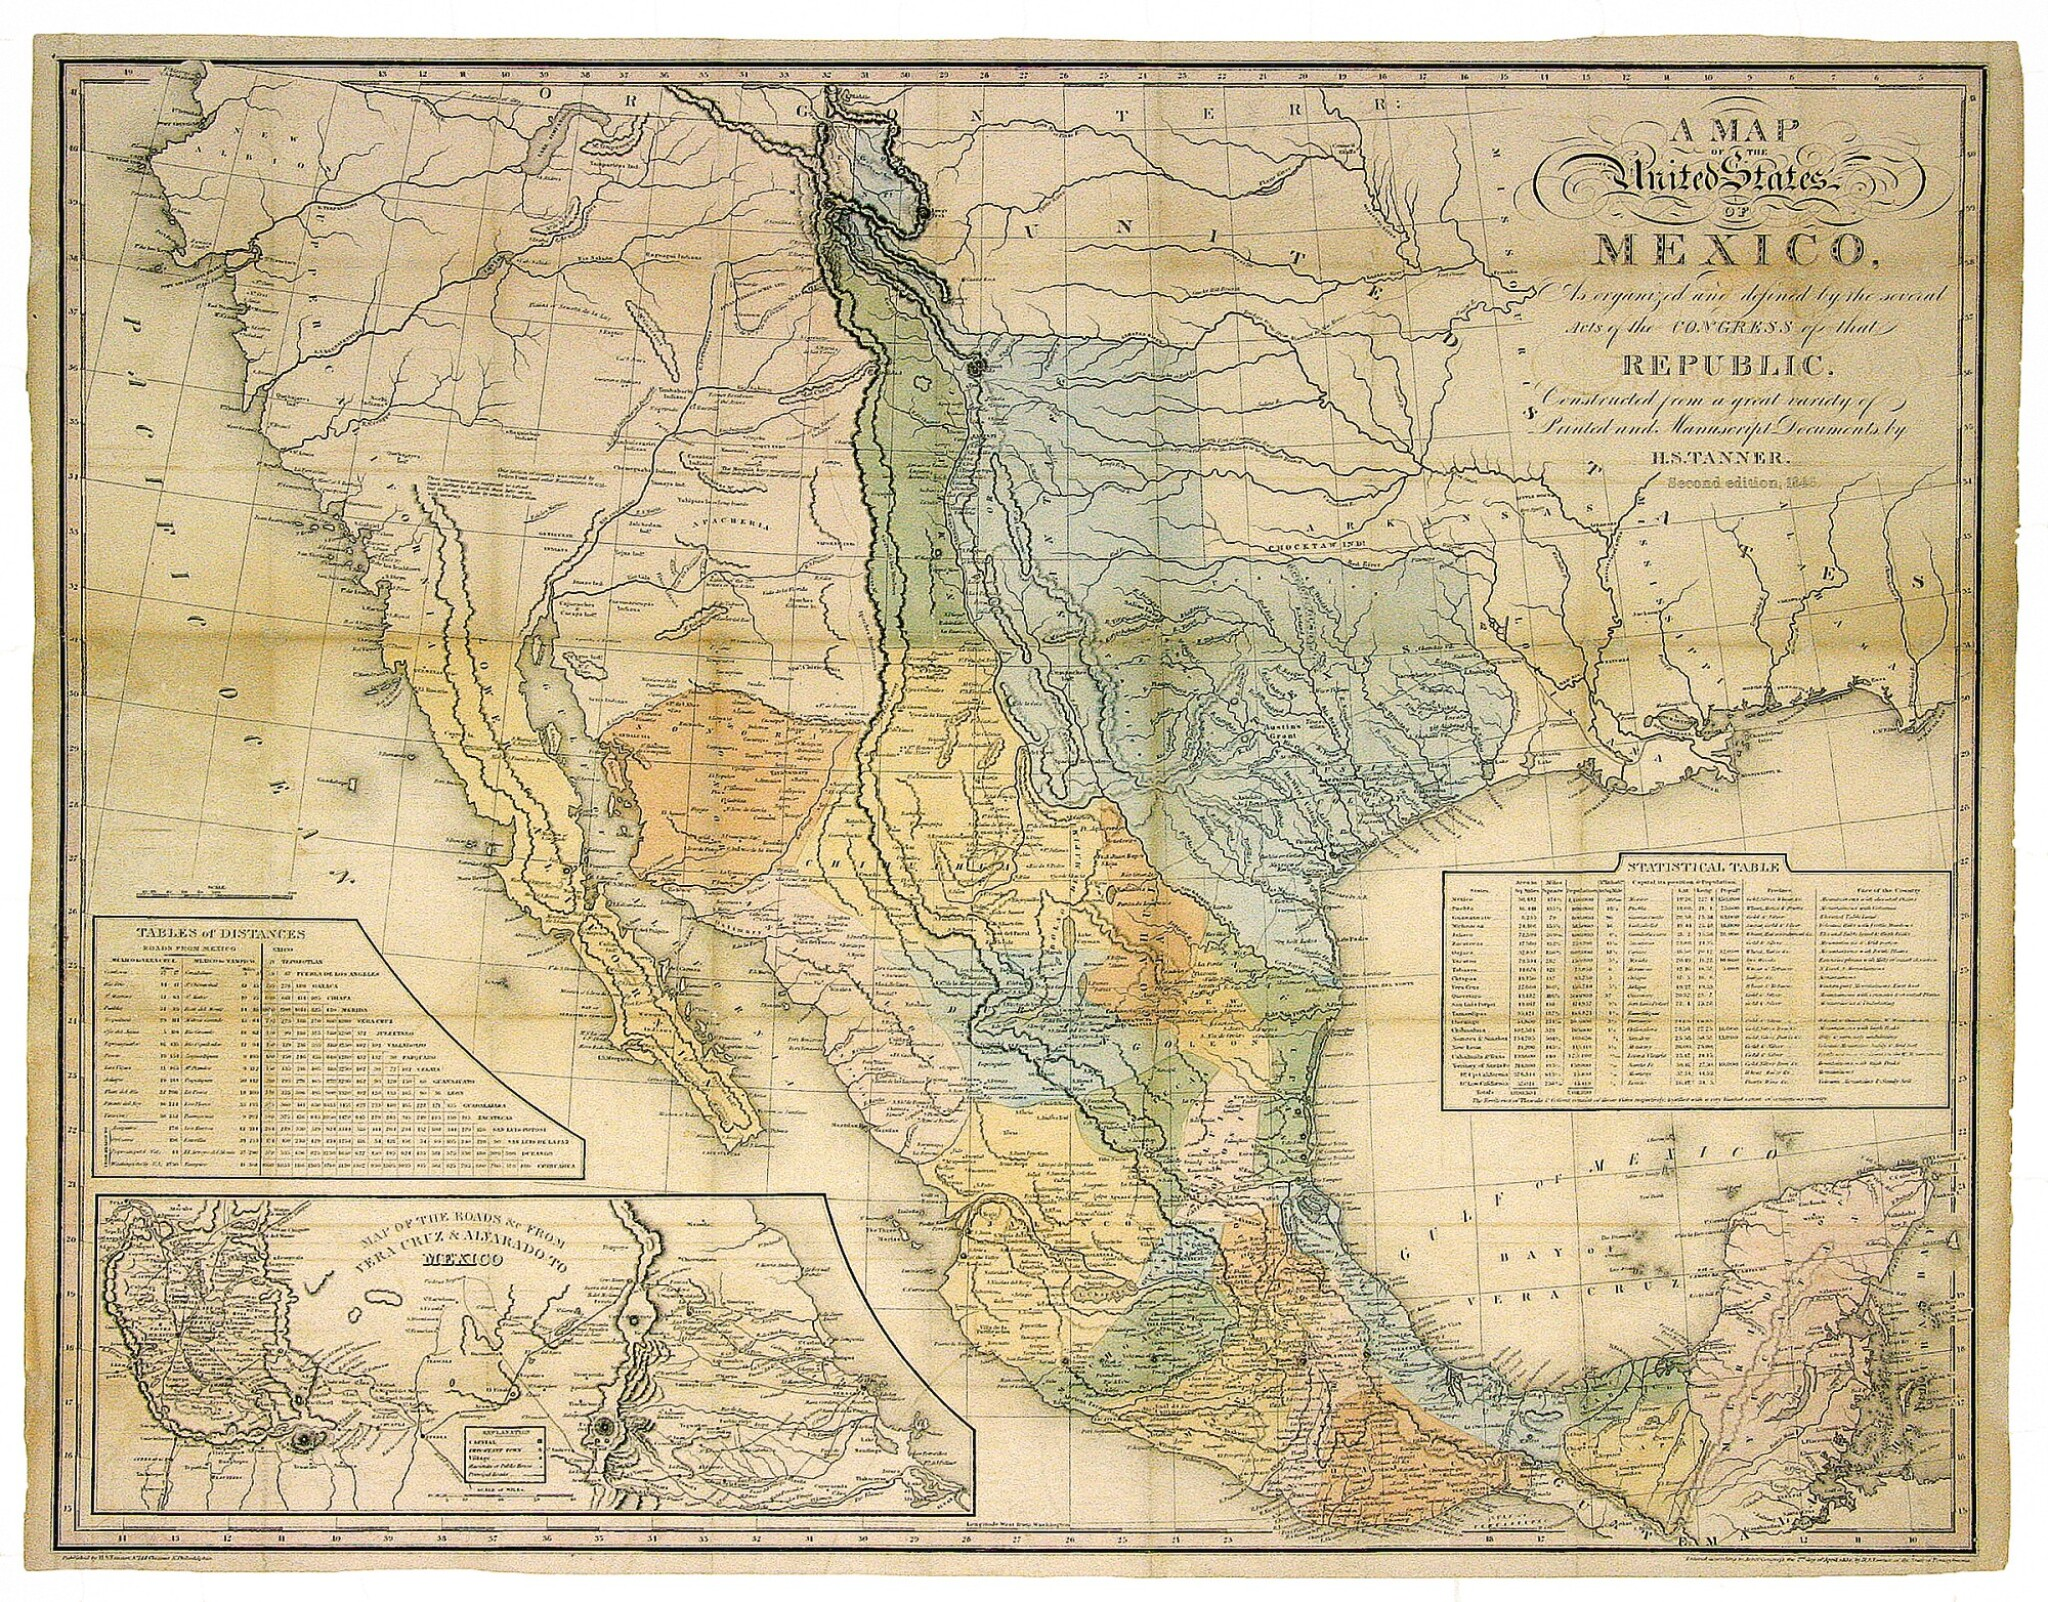 View full screen - View 1 of Lot 260. Tanner, H.[enry] S.[chenck] |  An important map of Mexico and the southwestern United States, depicting Texas in its largest form.